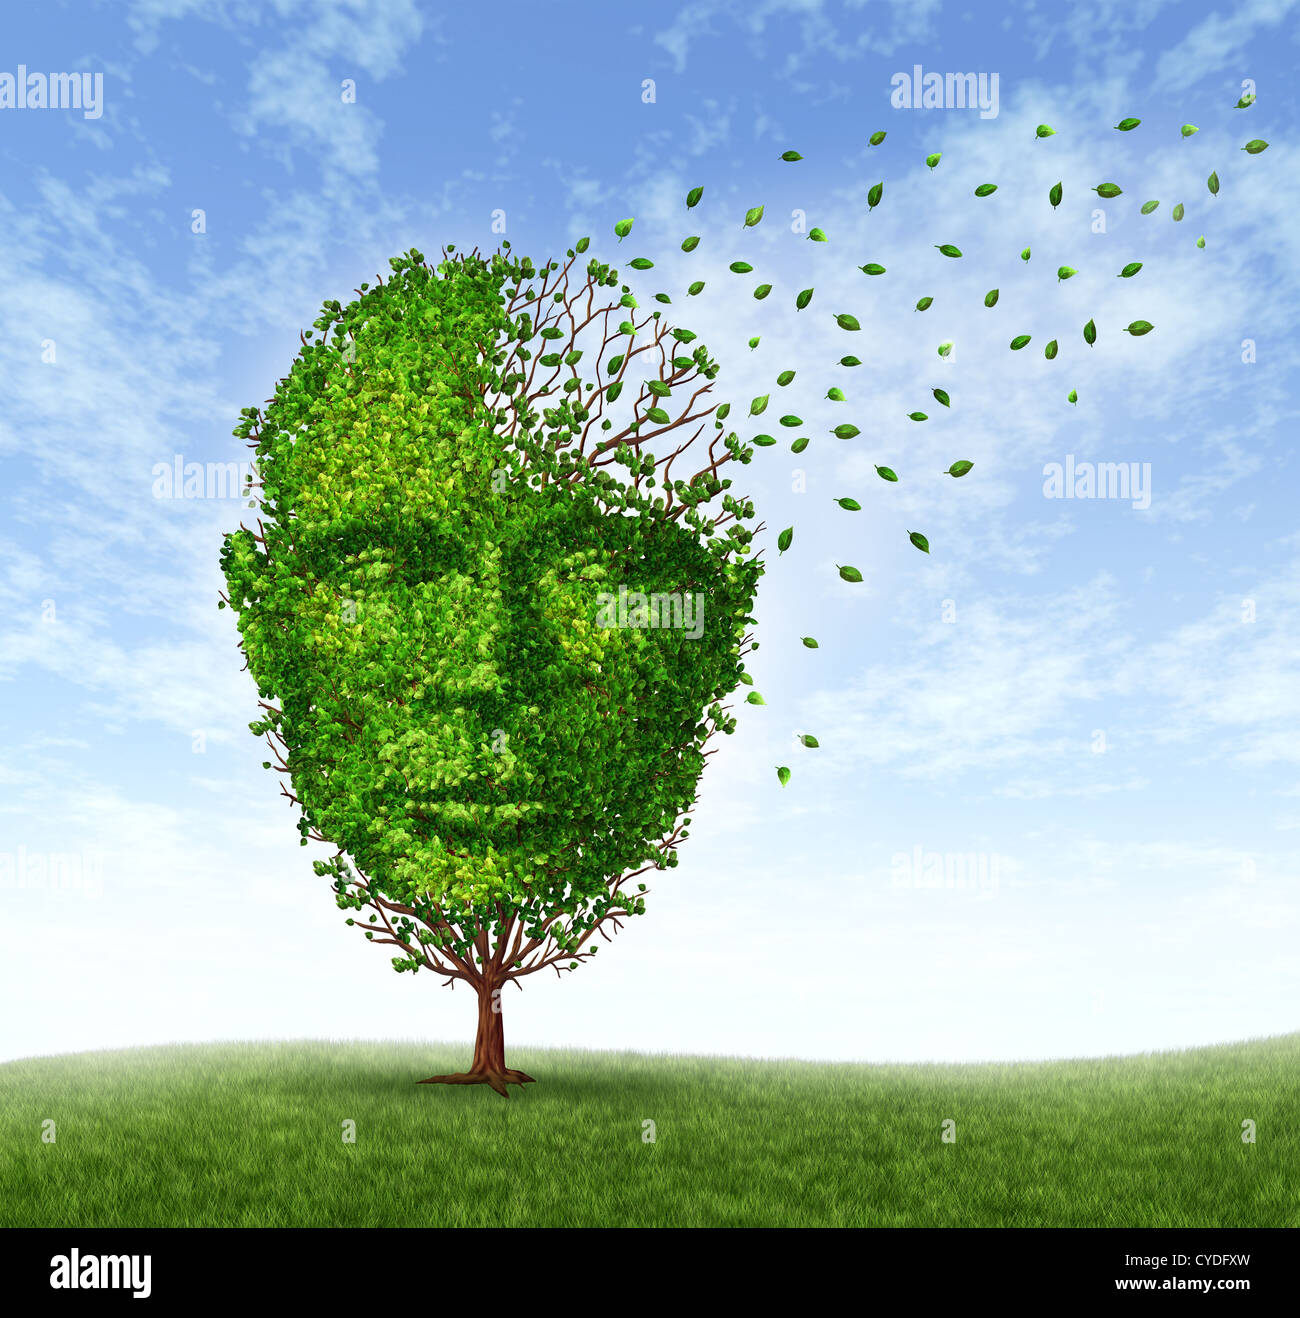 Human dementia problems as memory loss due to age and Alzheimer's disease with the medical icon of a tree in - Stock Image